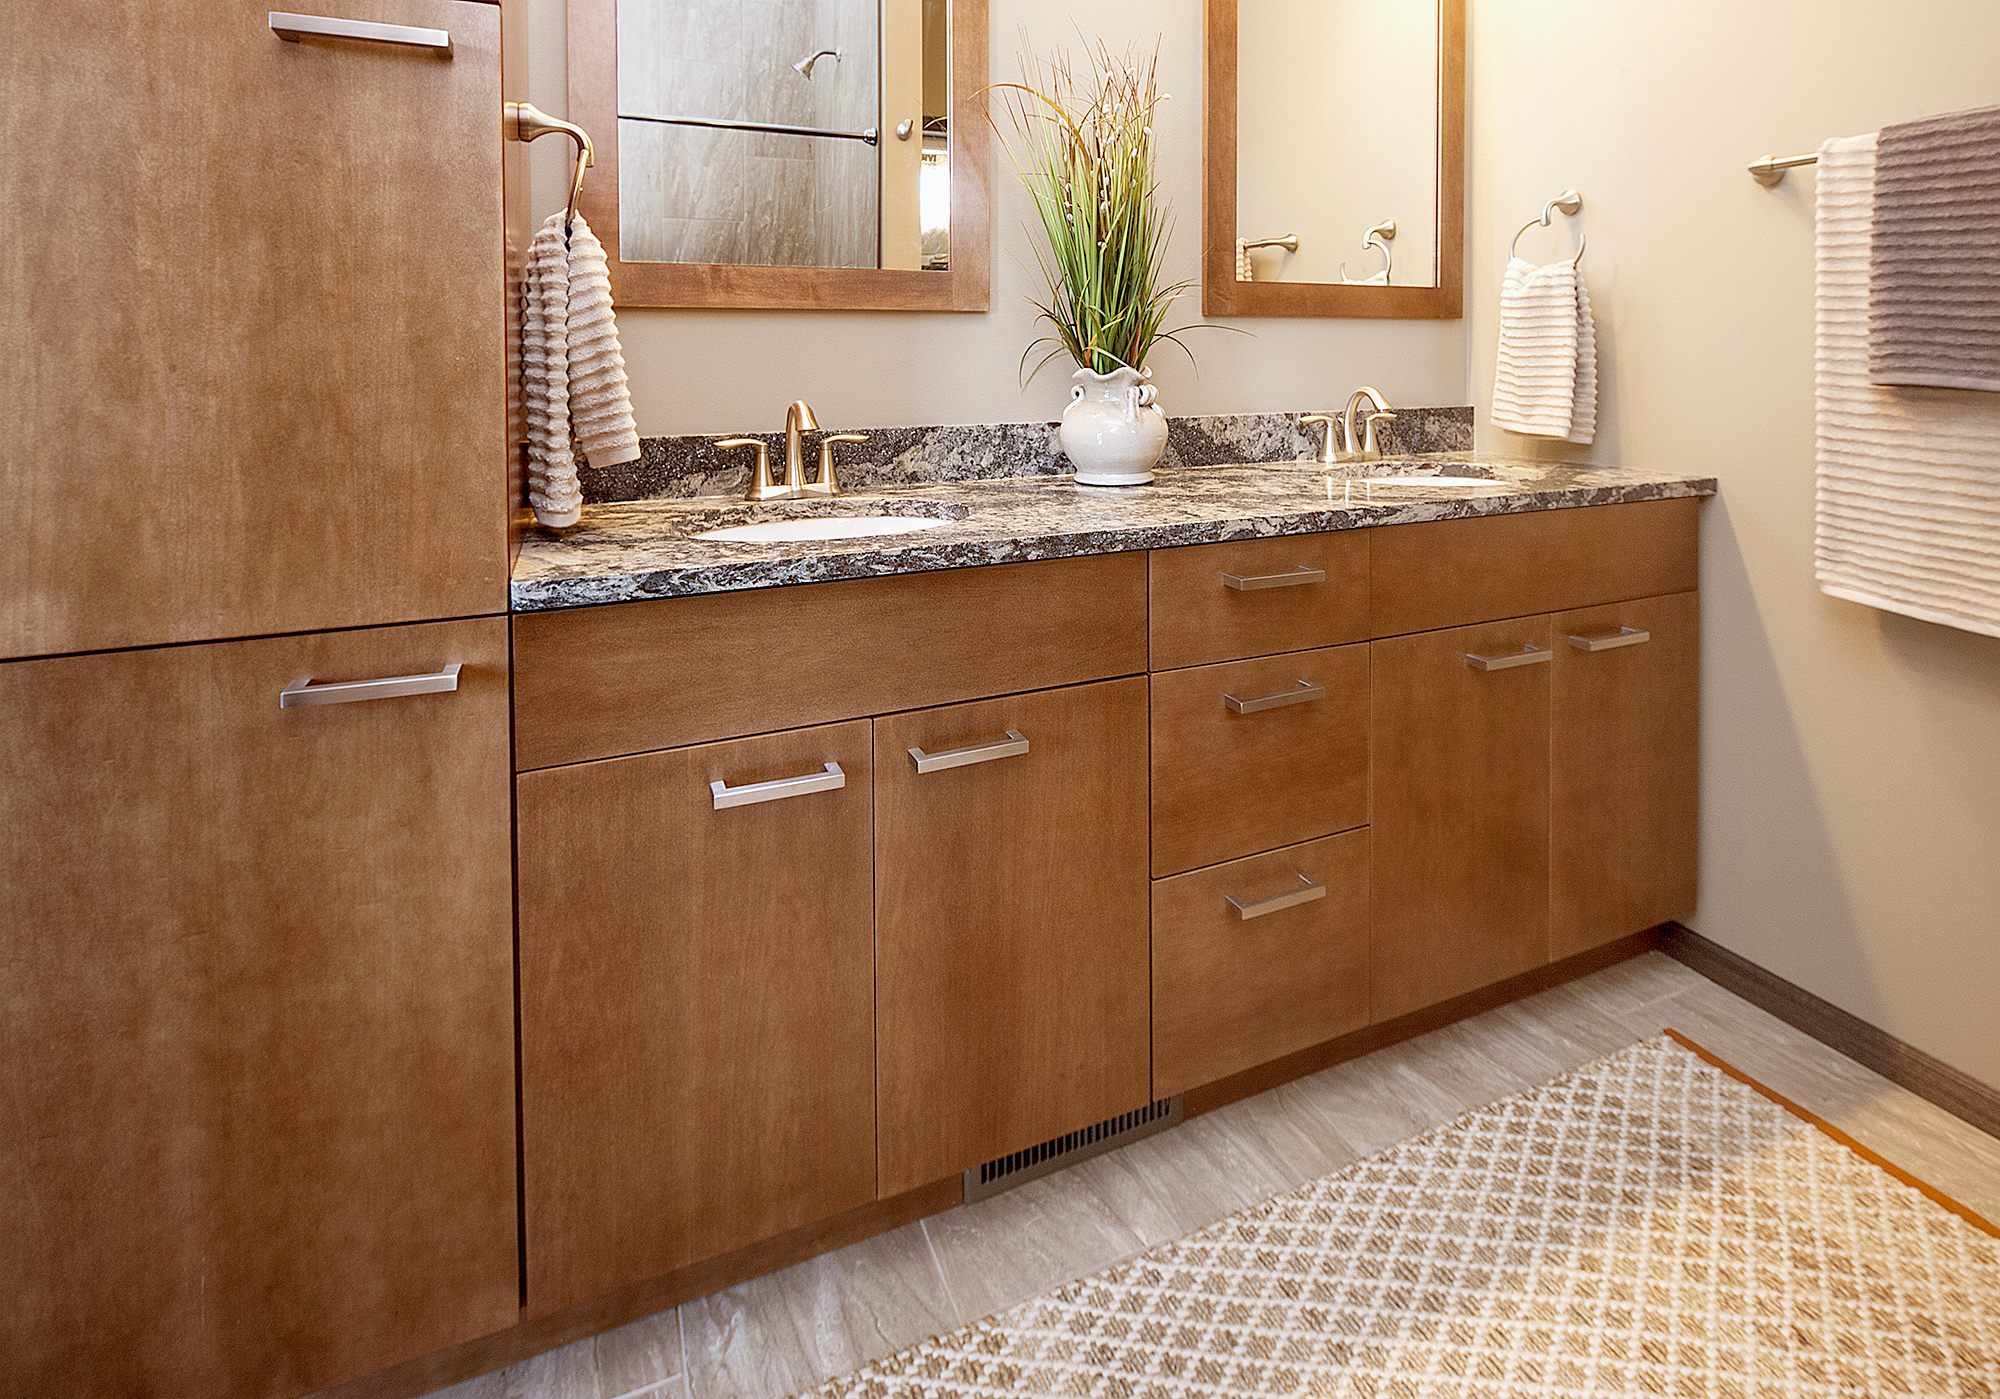 Stained Master Bathroom Cabinets in Pecan by ShowplaceEVO - view 1